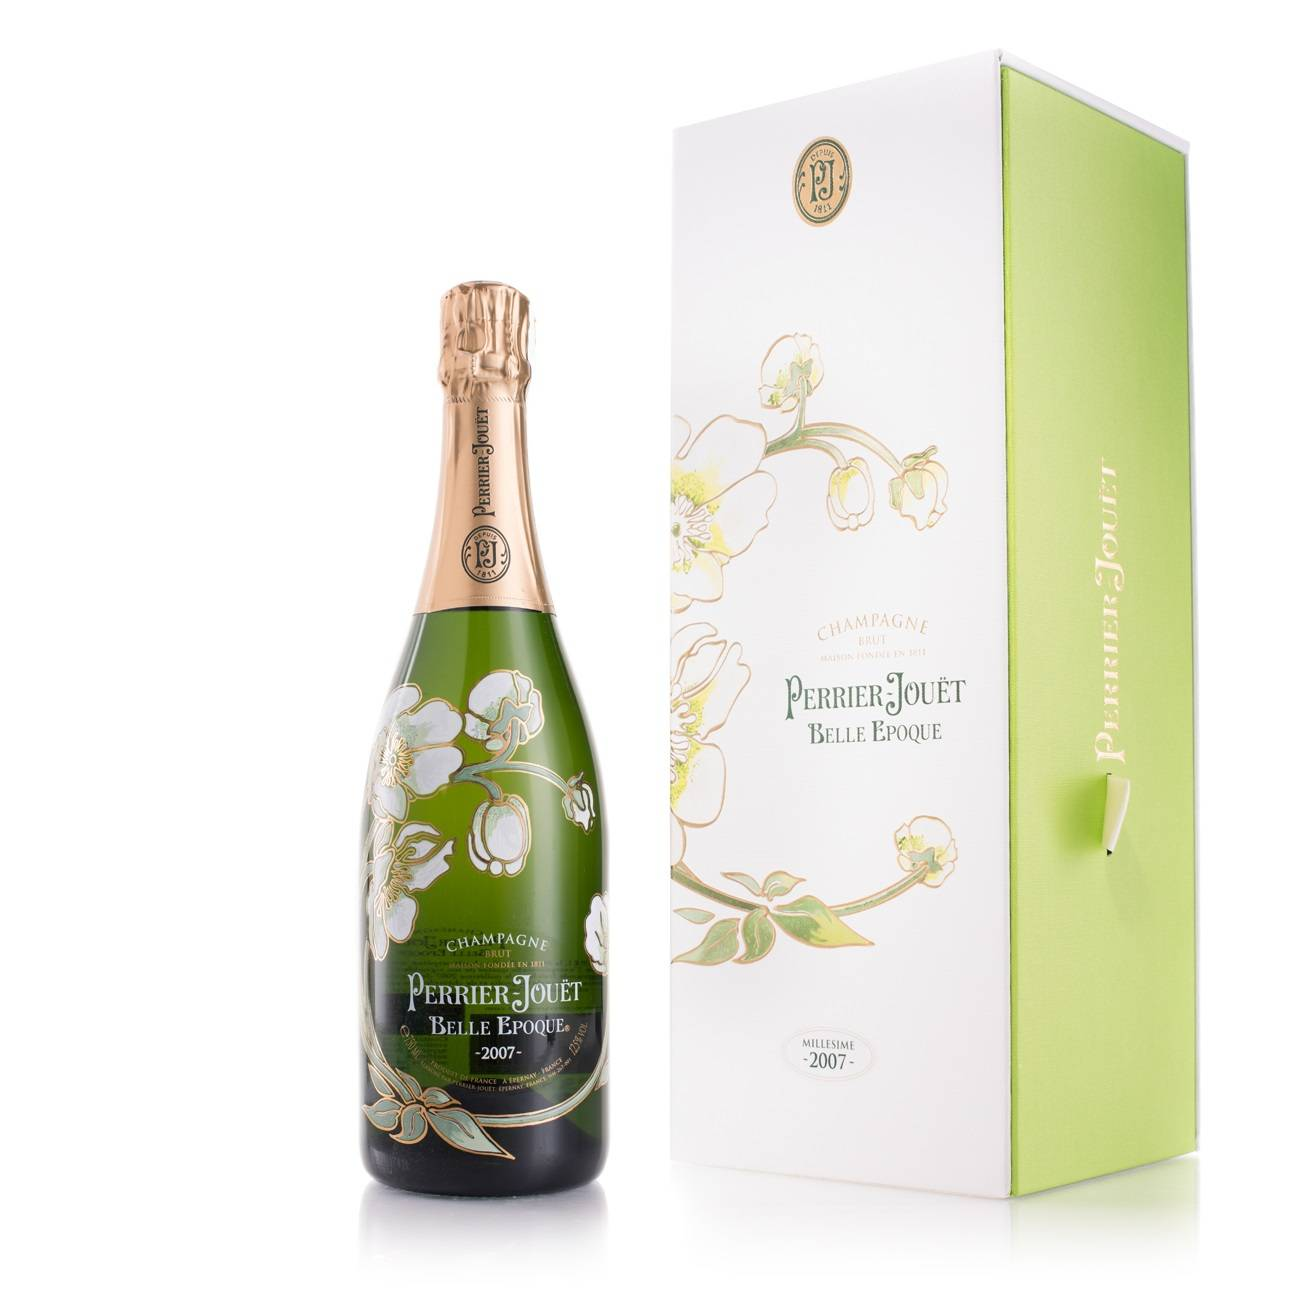 Sampanie, JOUET BELLE EPOQUE 750 Ml, Laurent Perrier